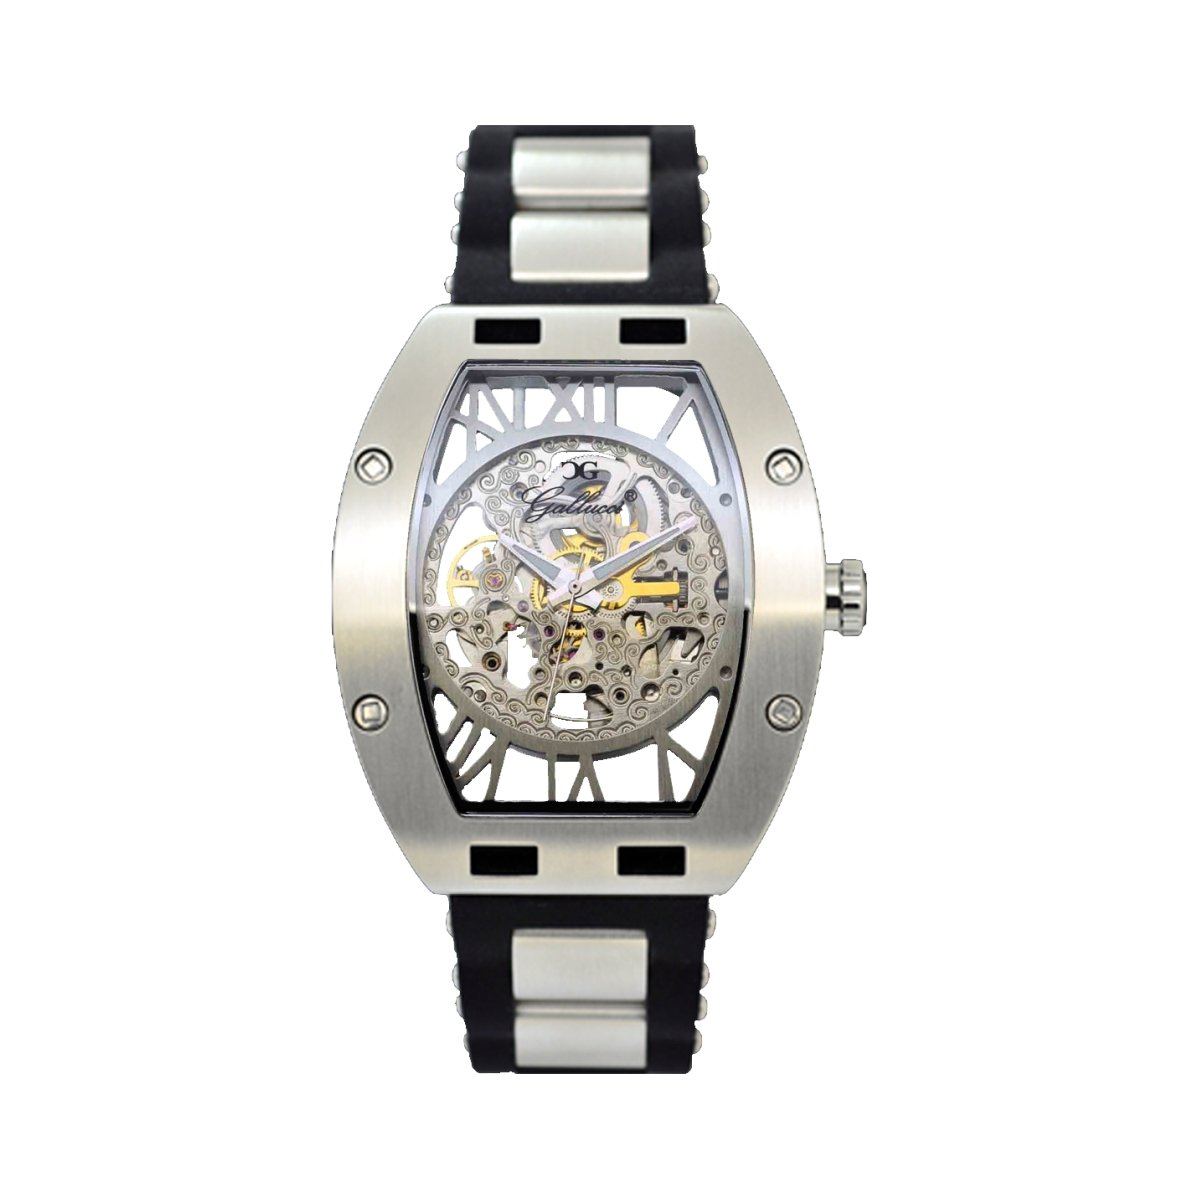 Gallucci Men's Women's WT22272SK/SSP-PNP Sporty Luxury Automatic Stainless Steel Watch with Black Band